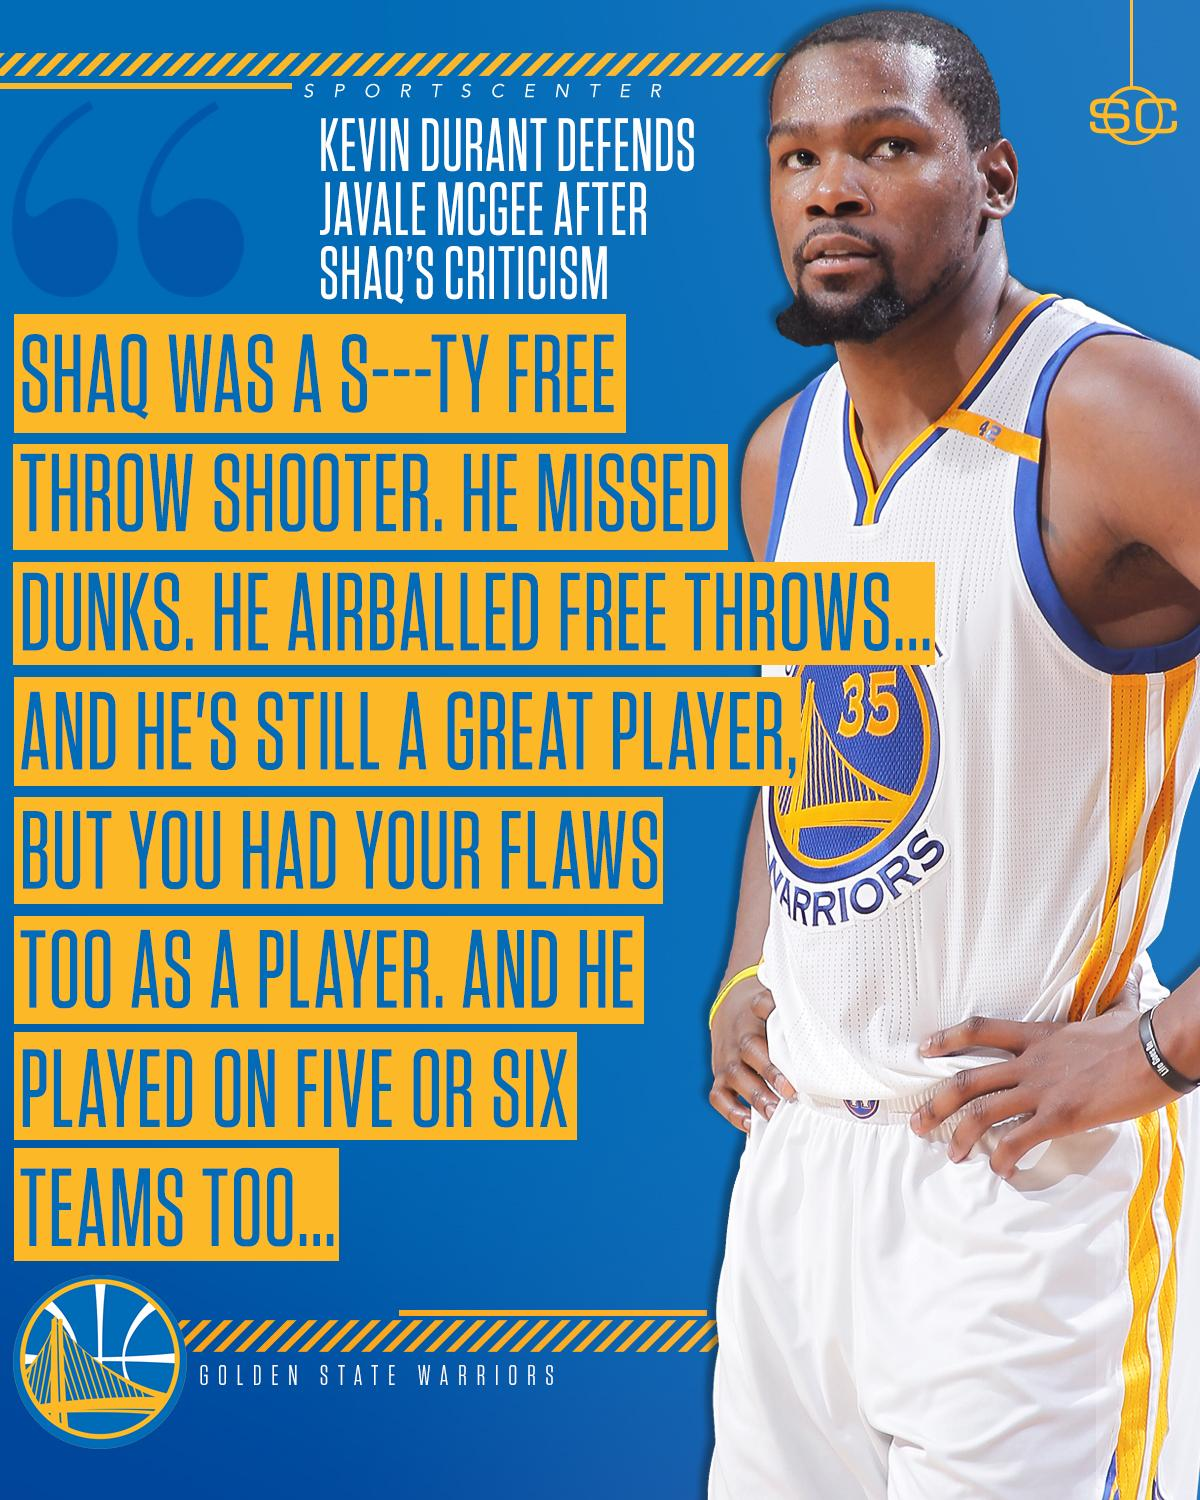 ICYMI: Kevin Durant defended JaVale McGee following Shaq's comments. https://t.co/QoTny1e8qs https://t.co/ynMzn1HUvz